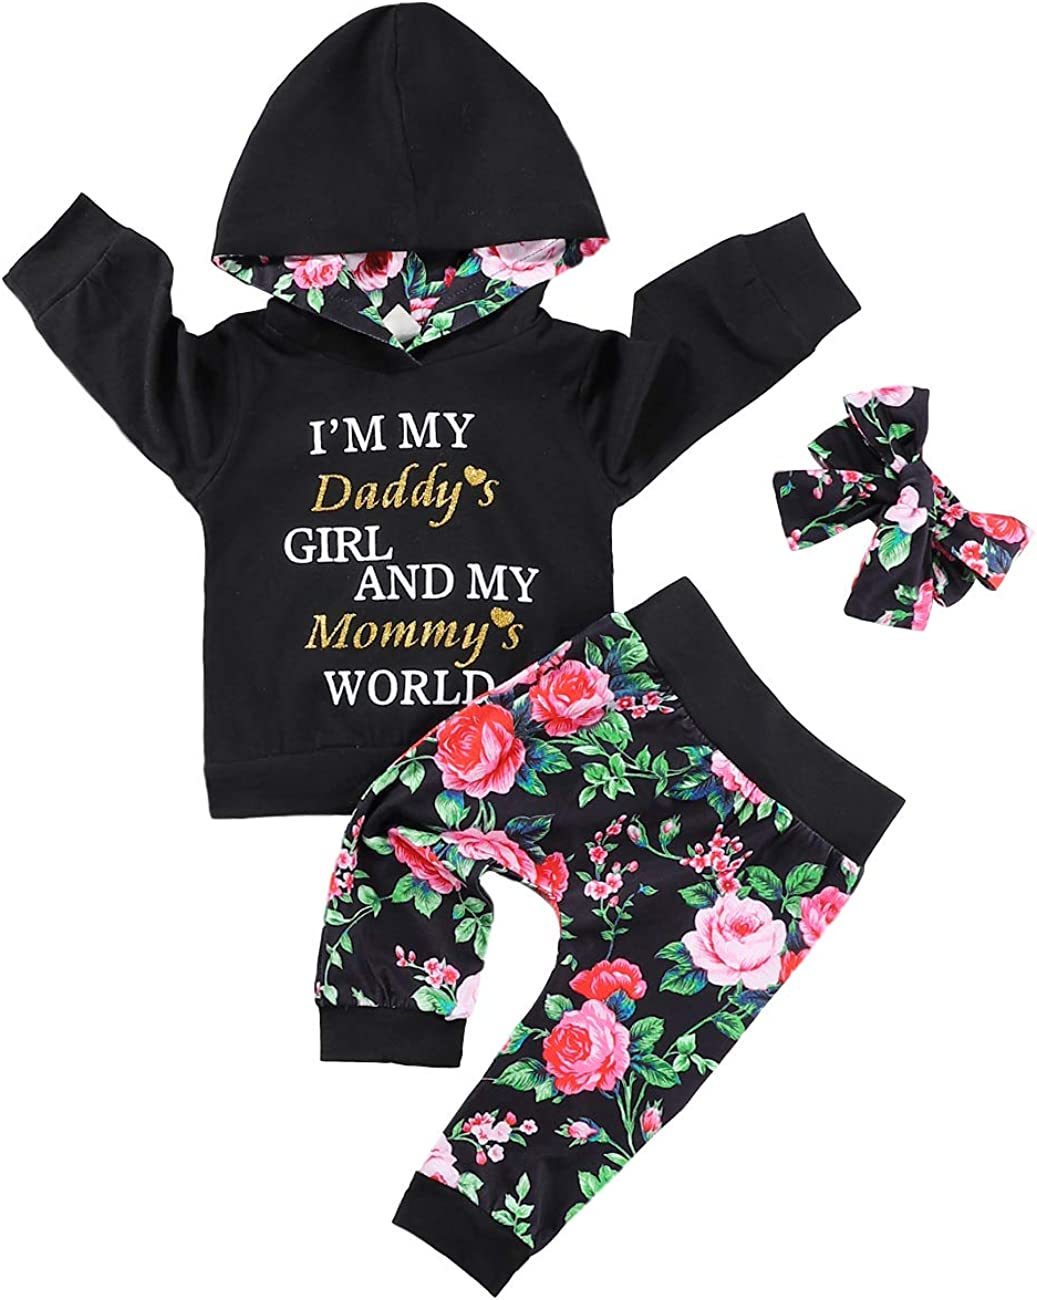 Baby Girl Clothes Daddy Mommy Print Long Sleeved Hooded Top and Floral Trousers with Headband Outfits Set(Black & Hoodies, 18-24 Months)